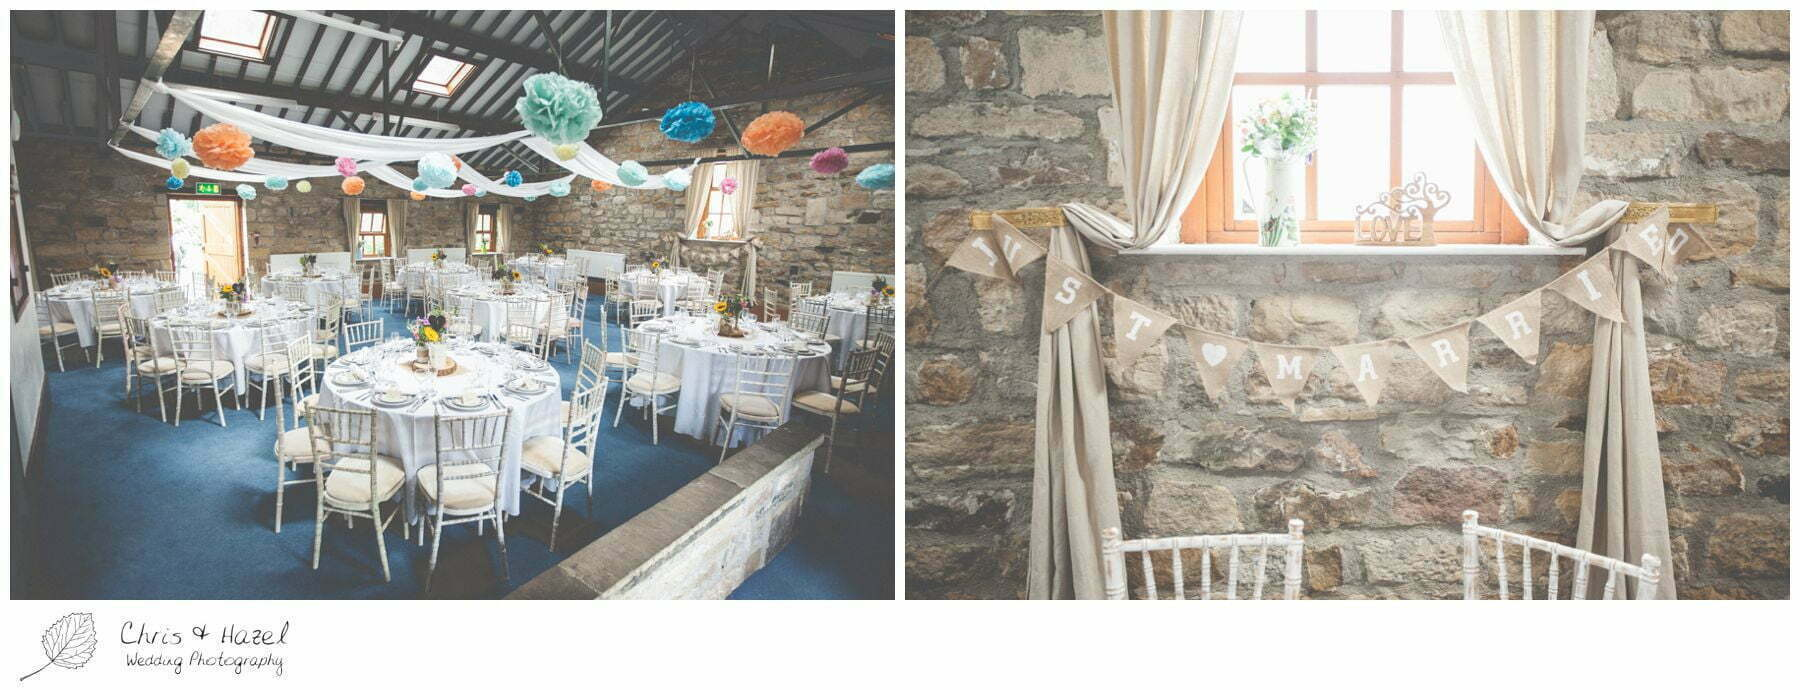 mr & mrs hessian bunting , eco wedding, love letters, wedding, Eccup Wedding Photographer, Lineham Farm, Wedding Photography Leeds, Chris and Hazel Wedding Photography, Richard Wyatt, Laura Kelly